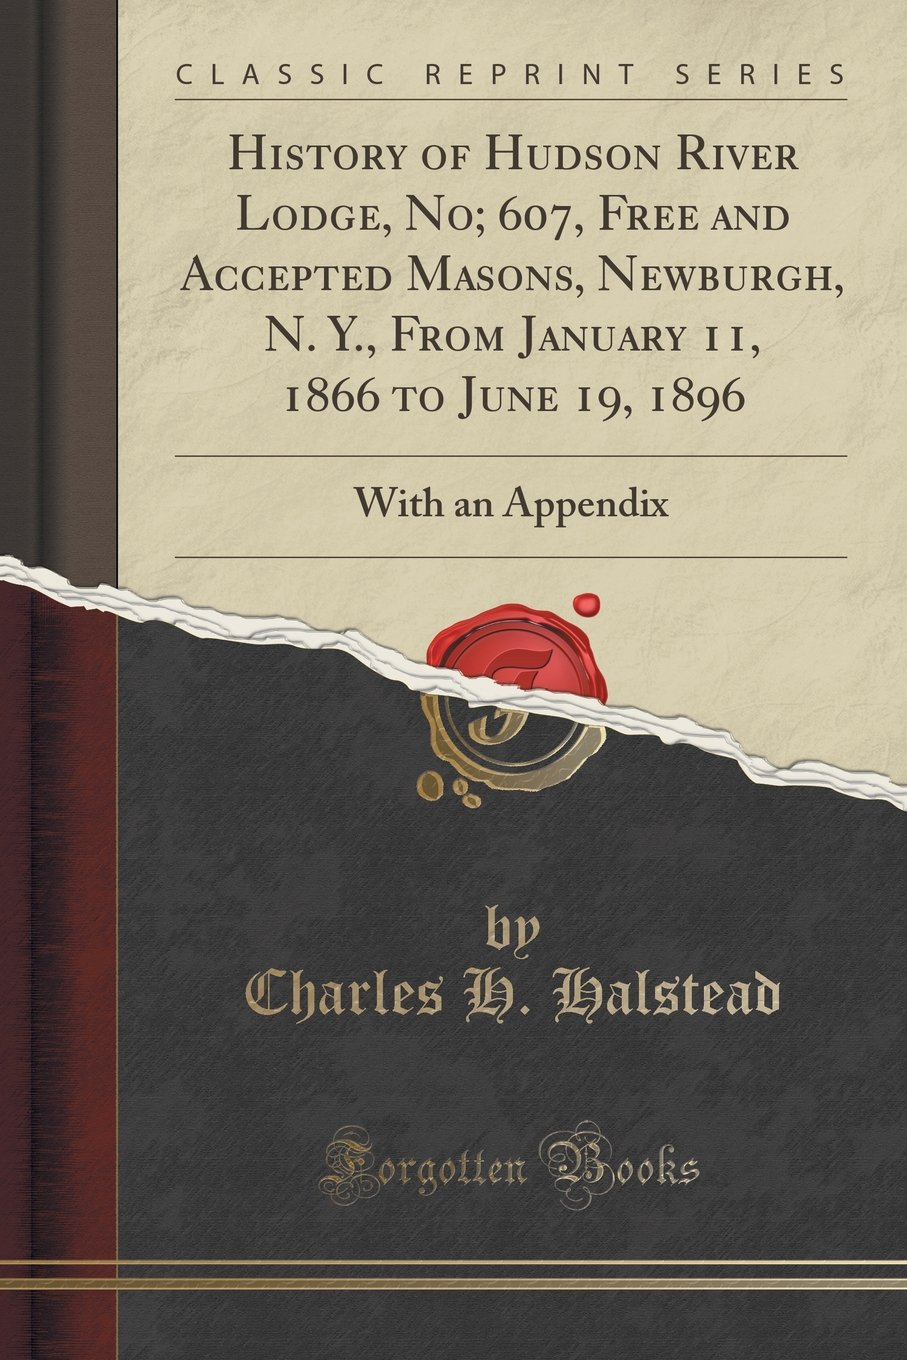 History of Hudson River Lodge, No; 607, Free and Accepted Masons, Newburgh, N. Y., From January 11, 1866 to June 19, 1896: With an Appendix (Classic Reprint) pdf epub